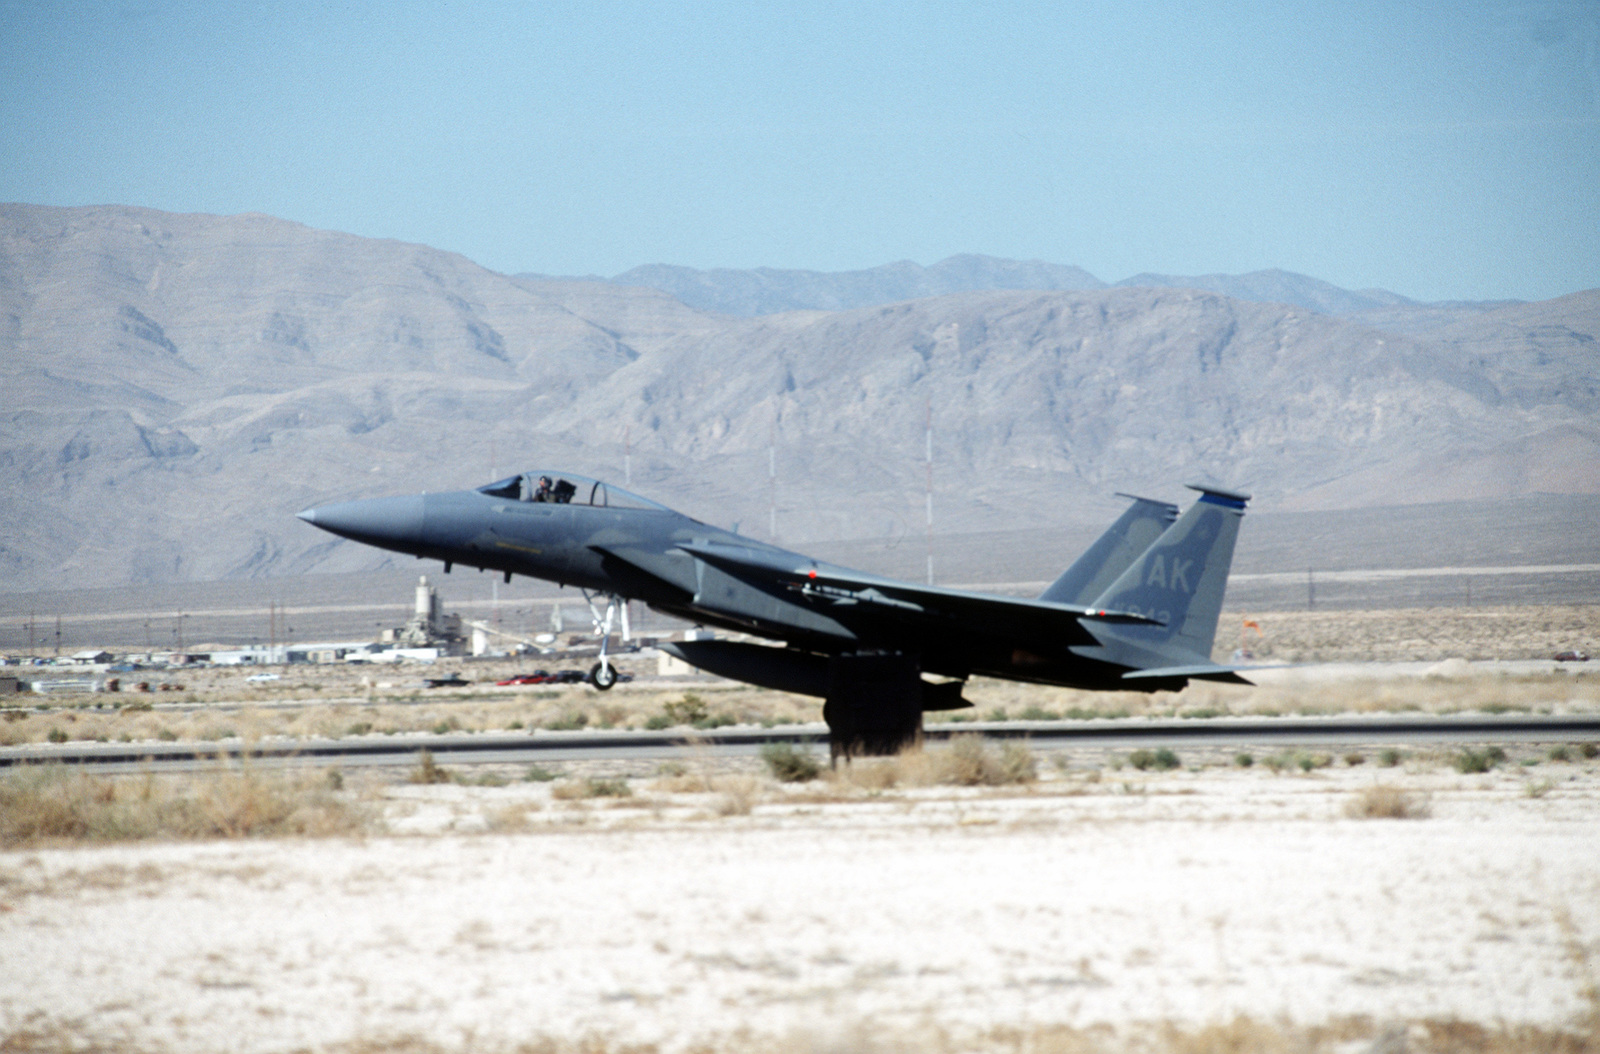 An F-15C Eagle from 3rd Wing, Elmendorf Air Force Base, Alaska takes off from the Nevada base during GUNSMOKE 95. Exact Date Shot Unknown